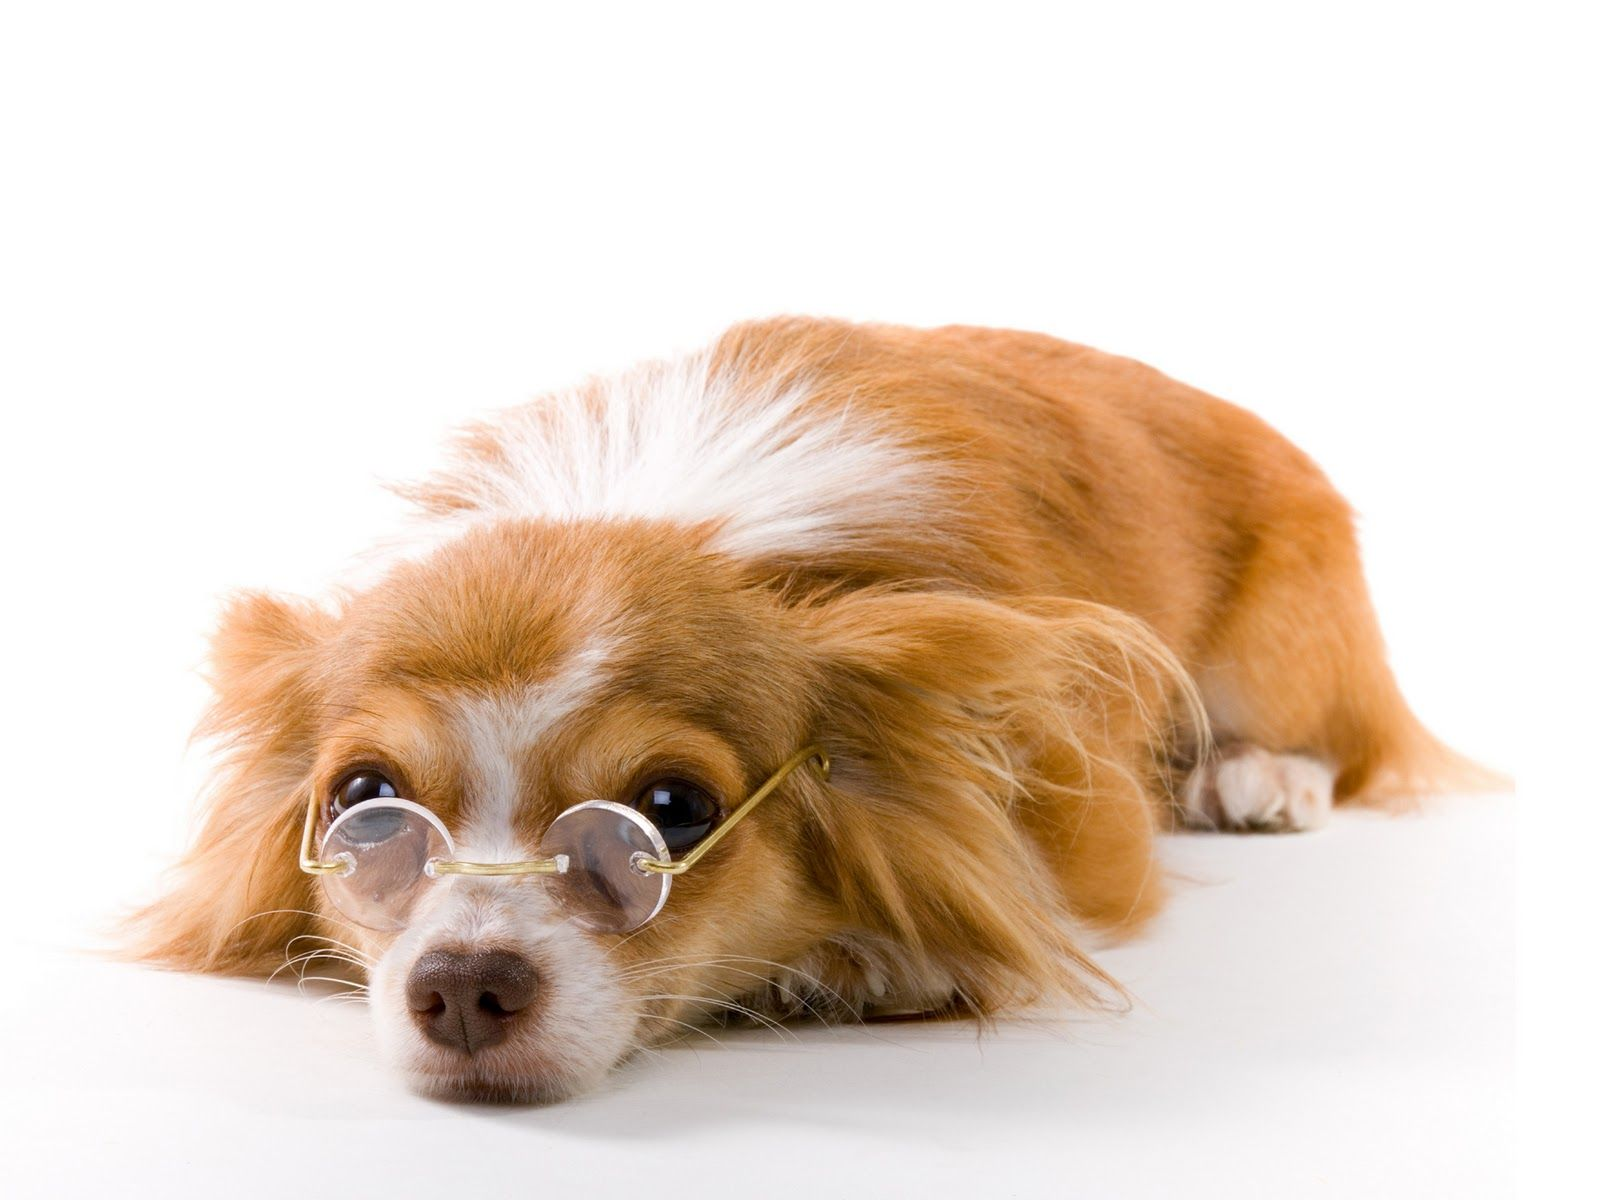 Dog with eyeglass dog wallpapers backgrounds on this dogs cute animal dog with eyeglass dog wallpapers backgrounds sciox Gallery